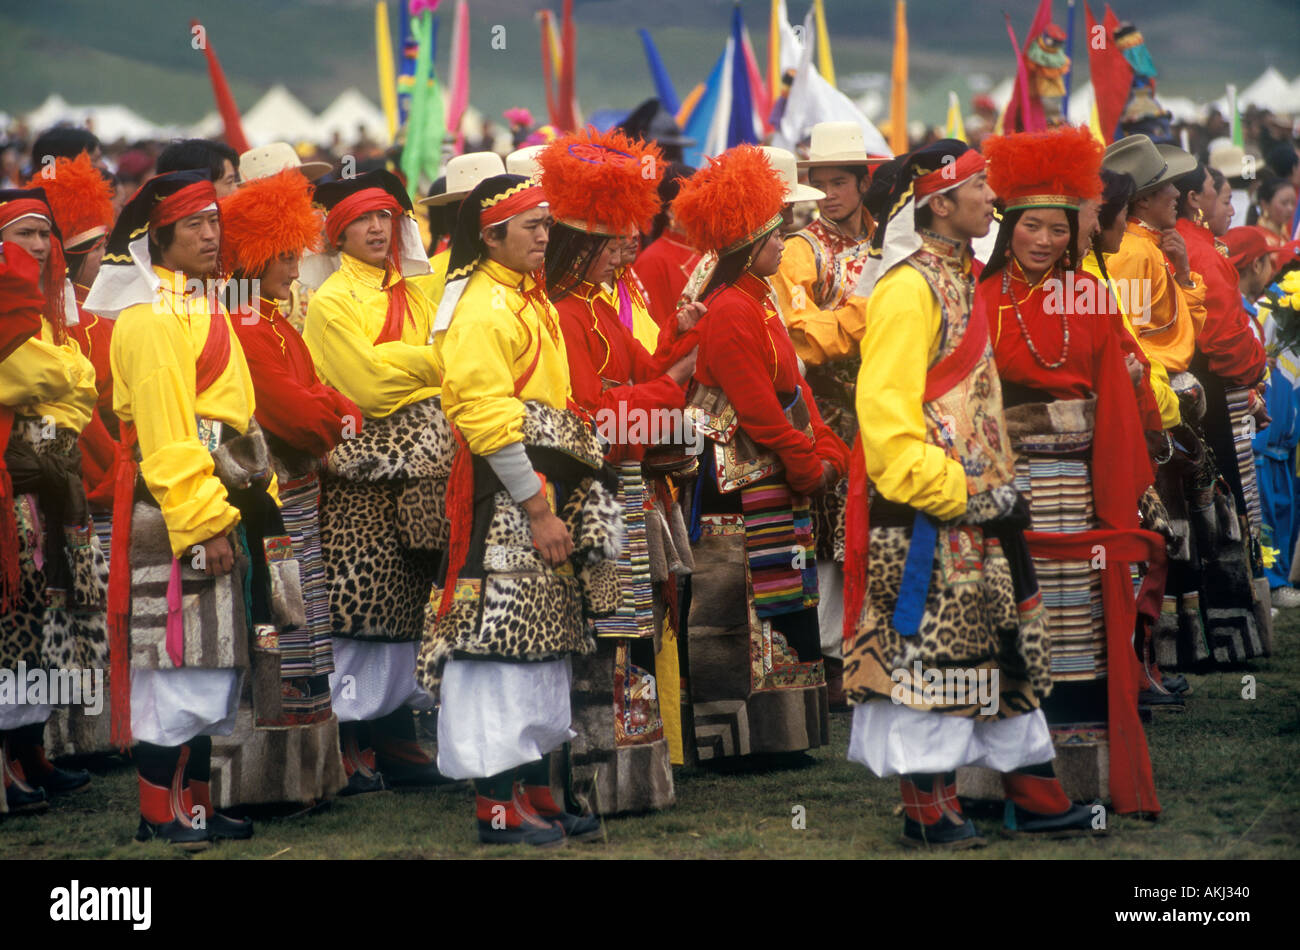 Dance troop with leopard skin costumes represent a region of Kham Litang Horse Festival Sichuan Province China - Stock Image